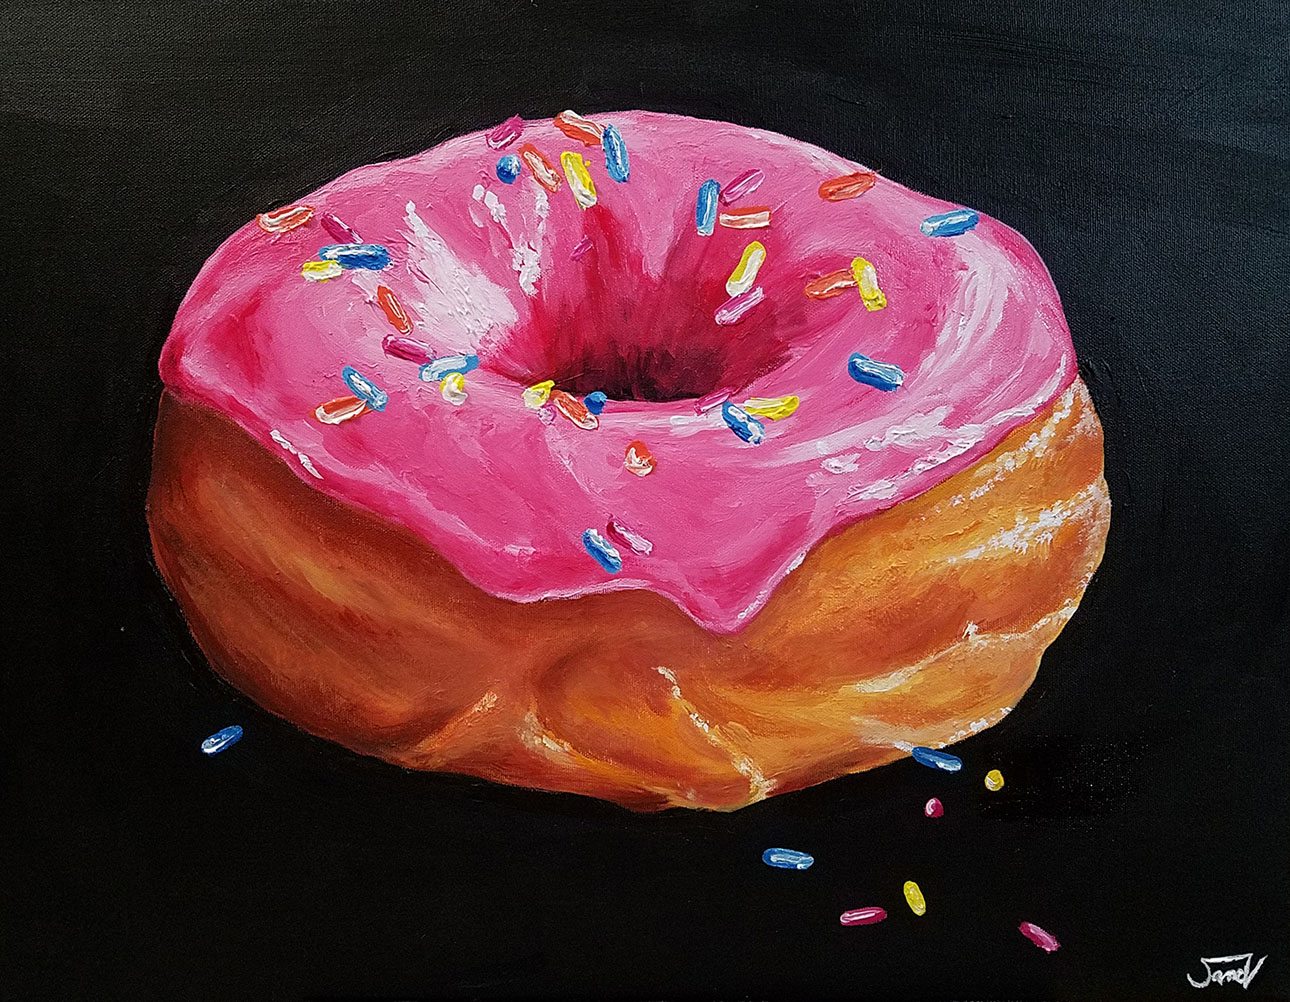 acrylic painting of a donut with pink frosting and sprinkles on a black background